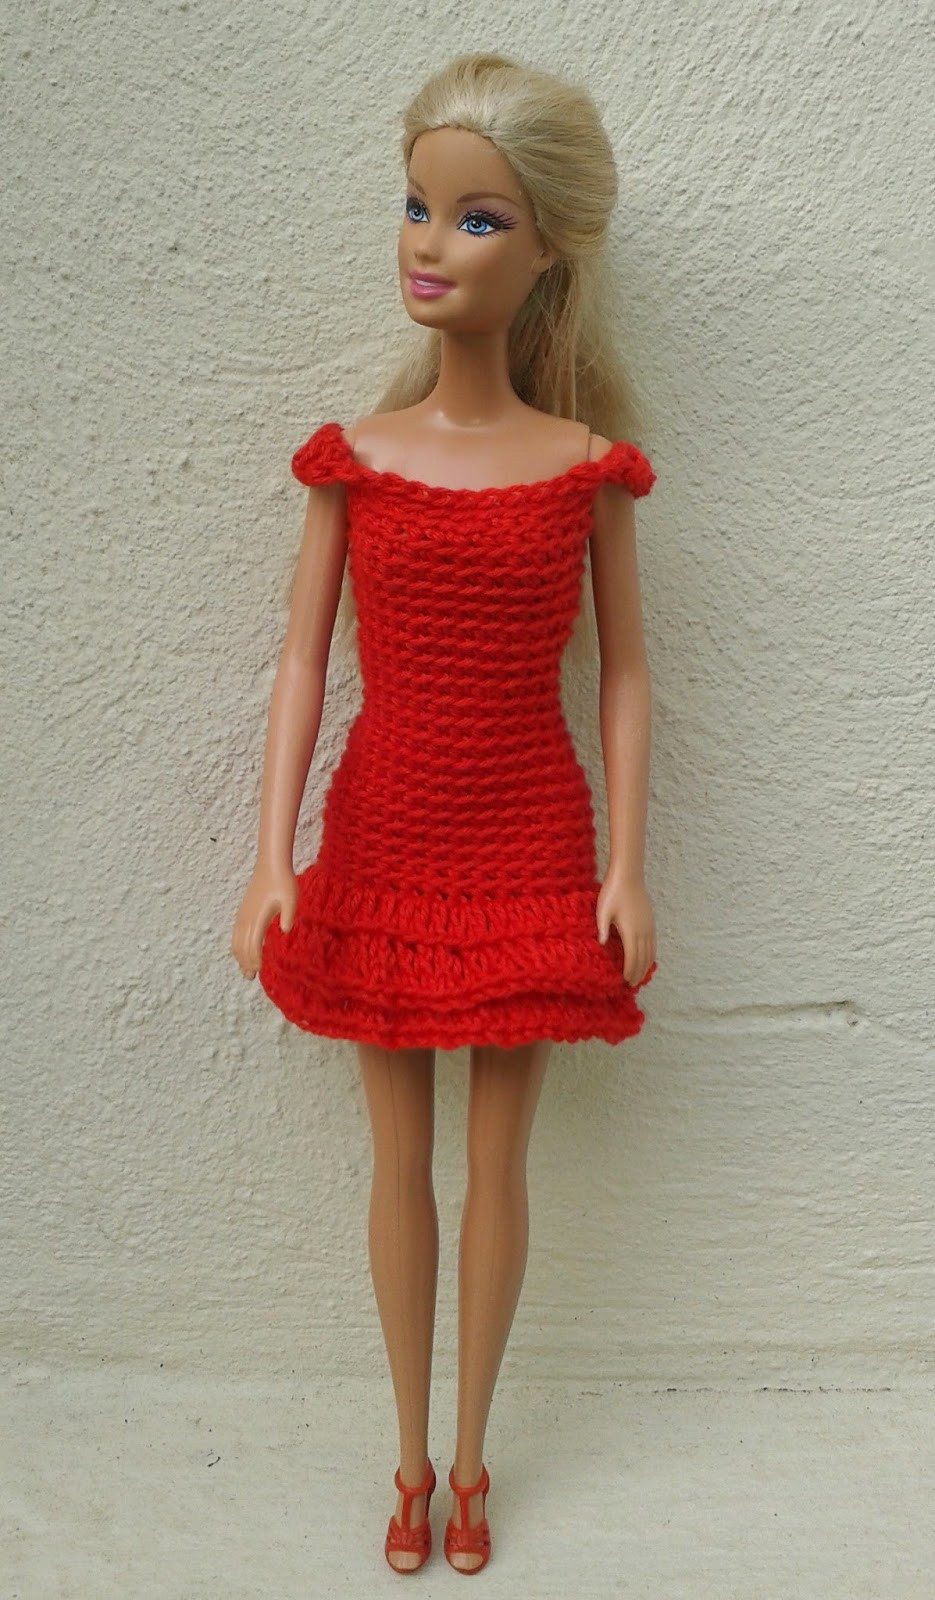 Crochet Barbie Dress New Linmary Knits Barbie In Red Crochet Dresses Of Amazing 46 Pictures Crochet Barbie Dress